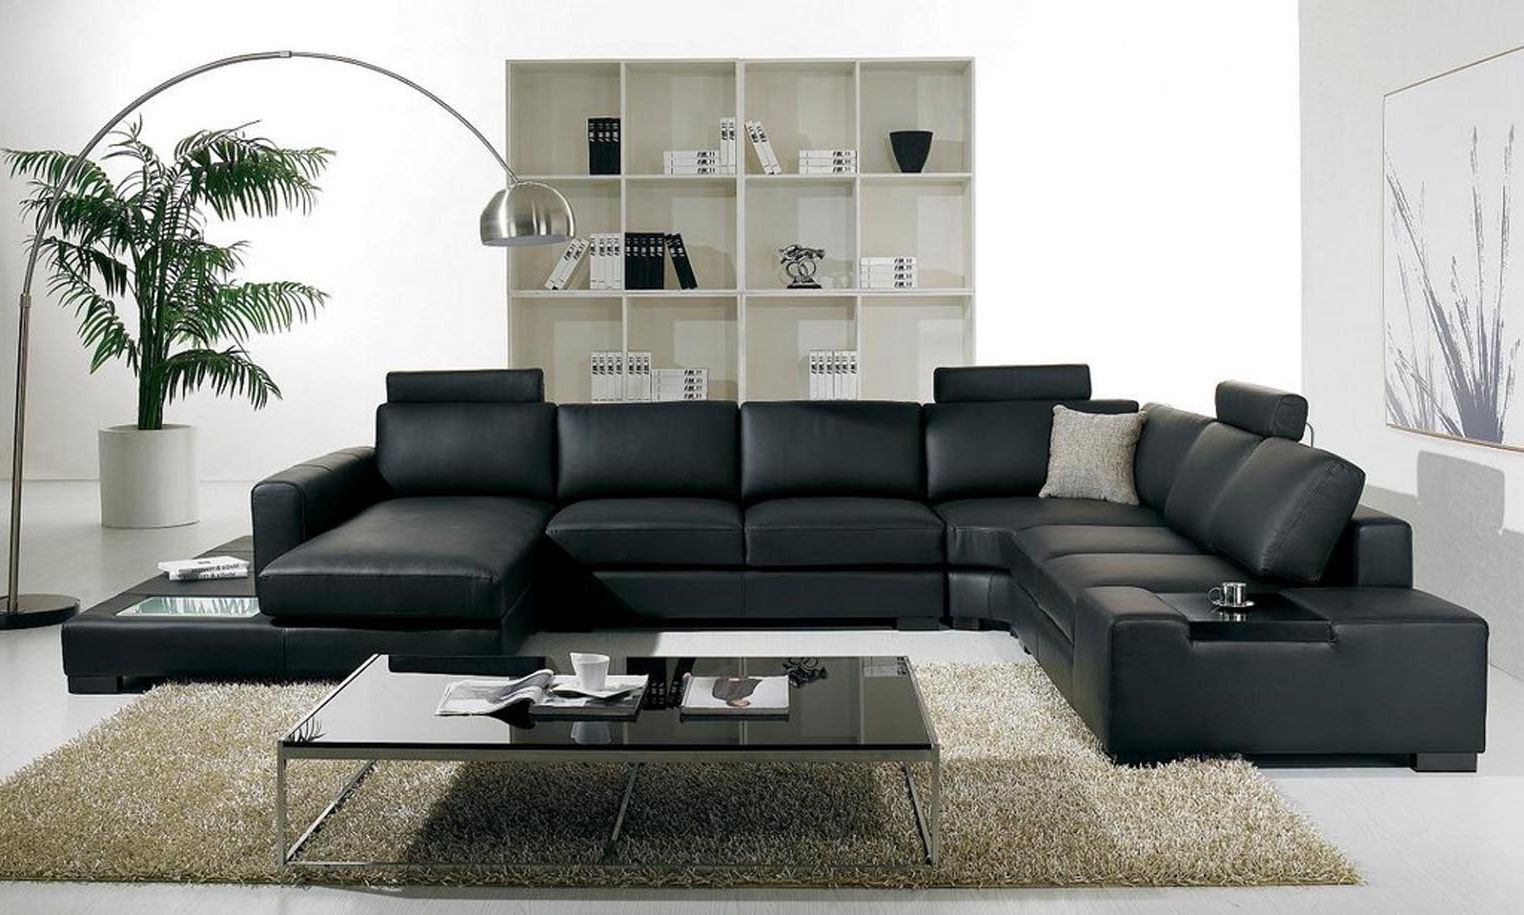 2231 15 Top Design Ideas Of Leather Living Room Furniture Living Room Leather Leather Sofa Living Room Living Room Sets Furniture